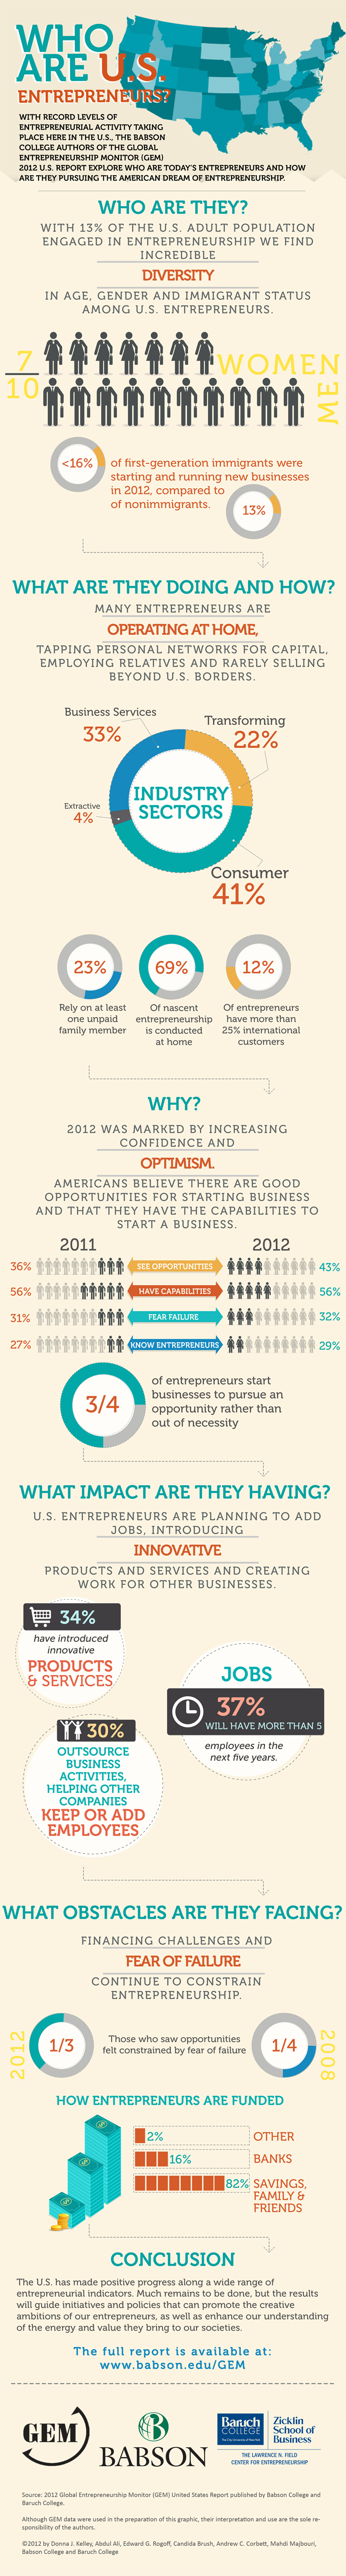 who-are-us-entrepreneurs